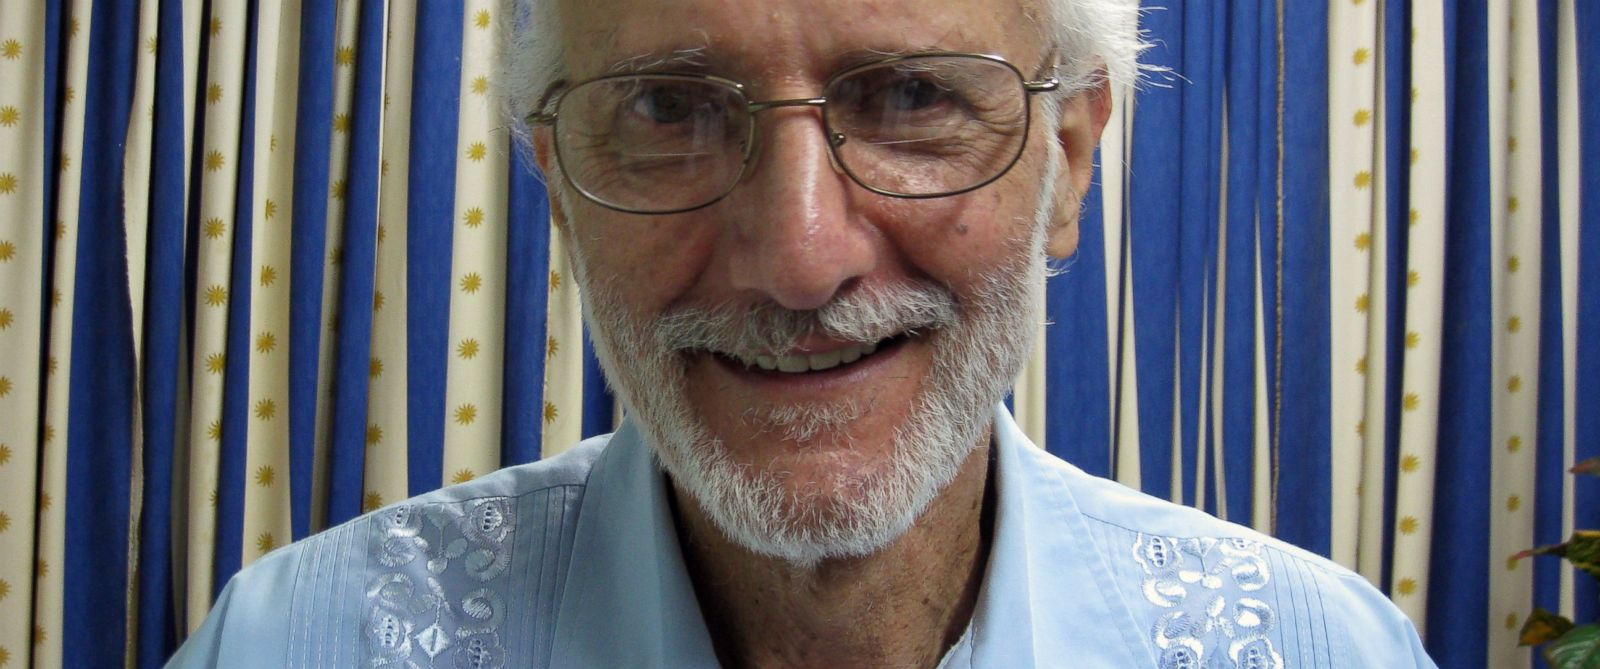 PHOTO: In this Nov. 27, 2012 file photo provided by James L. Berenthal, jailed American Alan Gross poses for a photo.